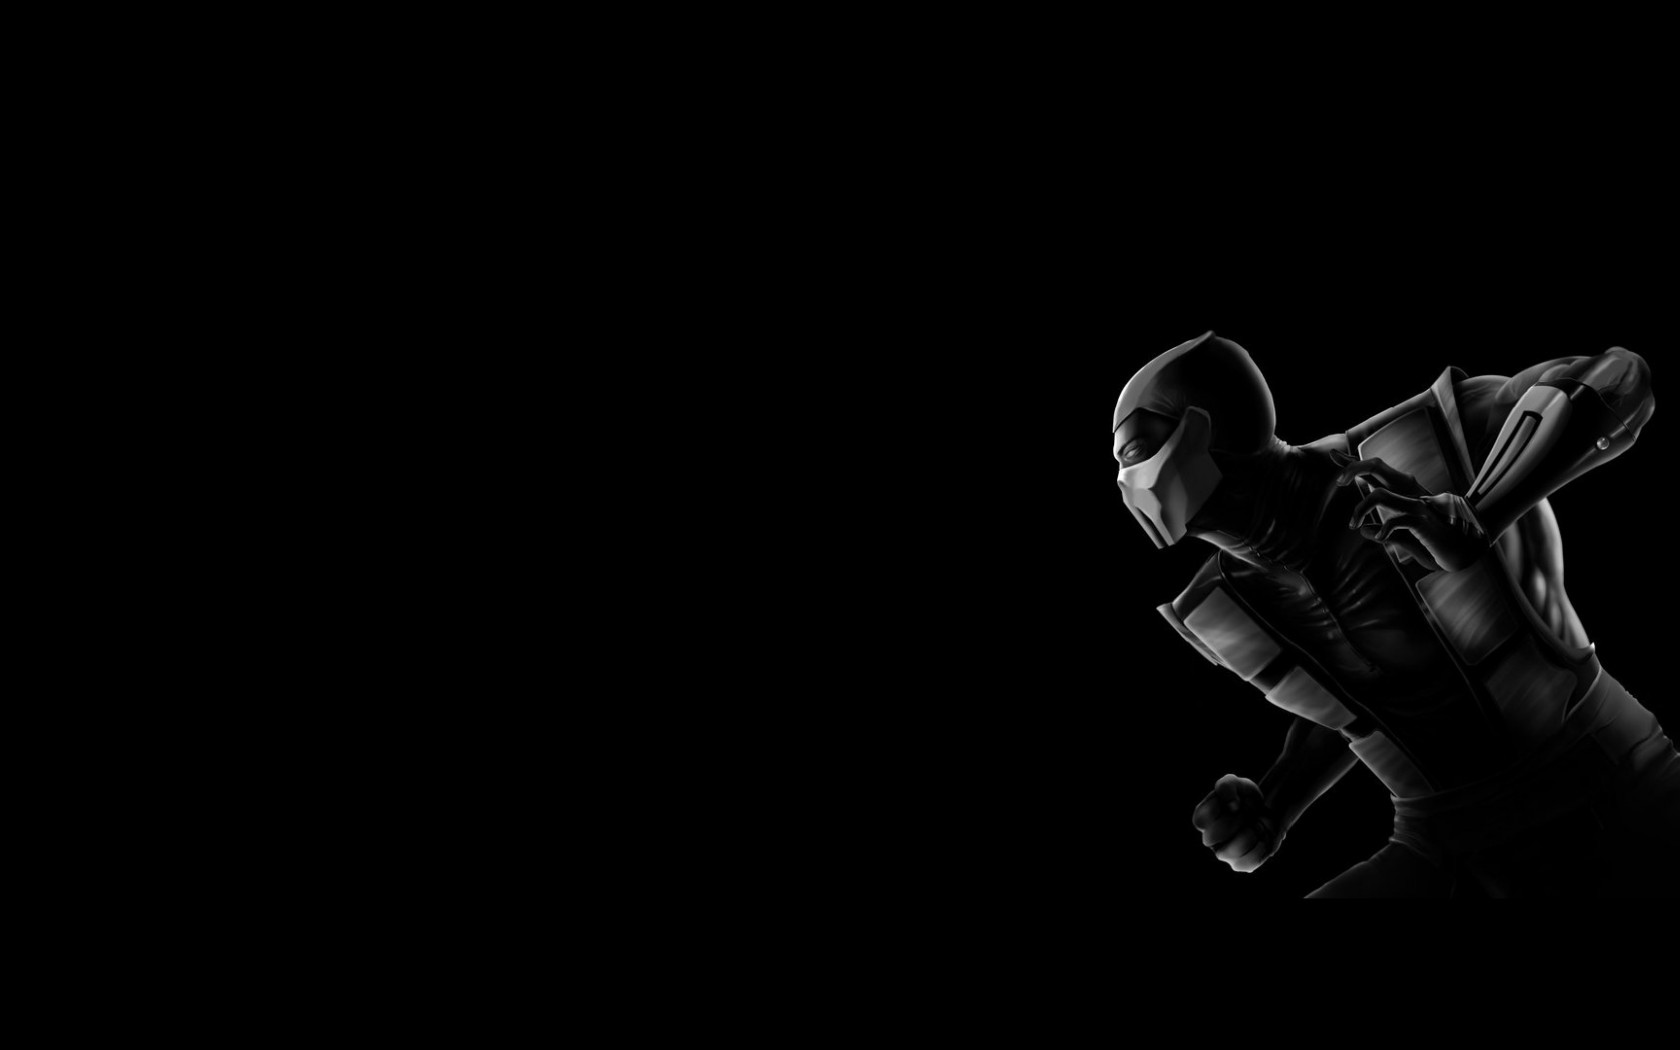 Mortal Kombat wallpaper Noob Saibot 2